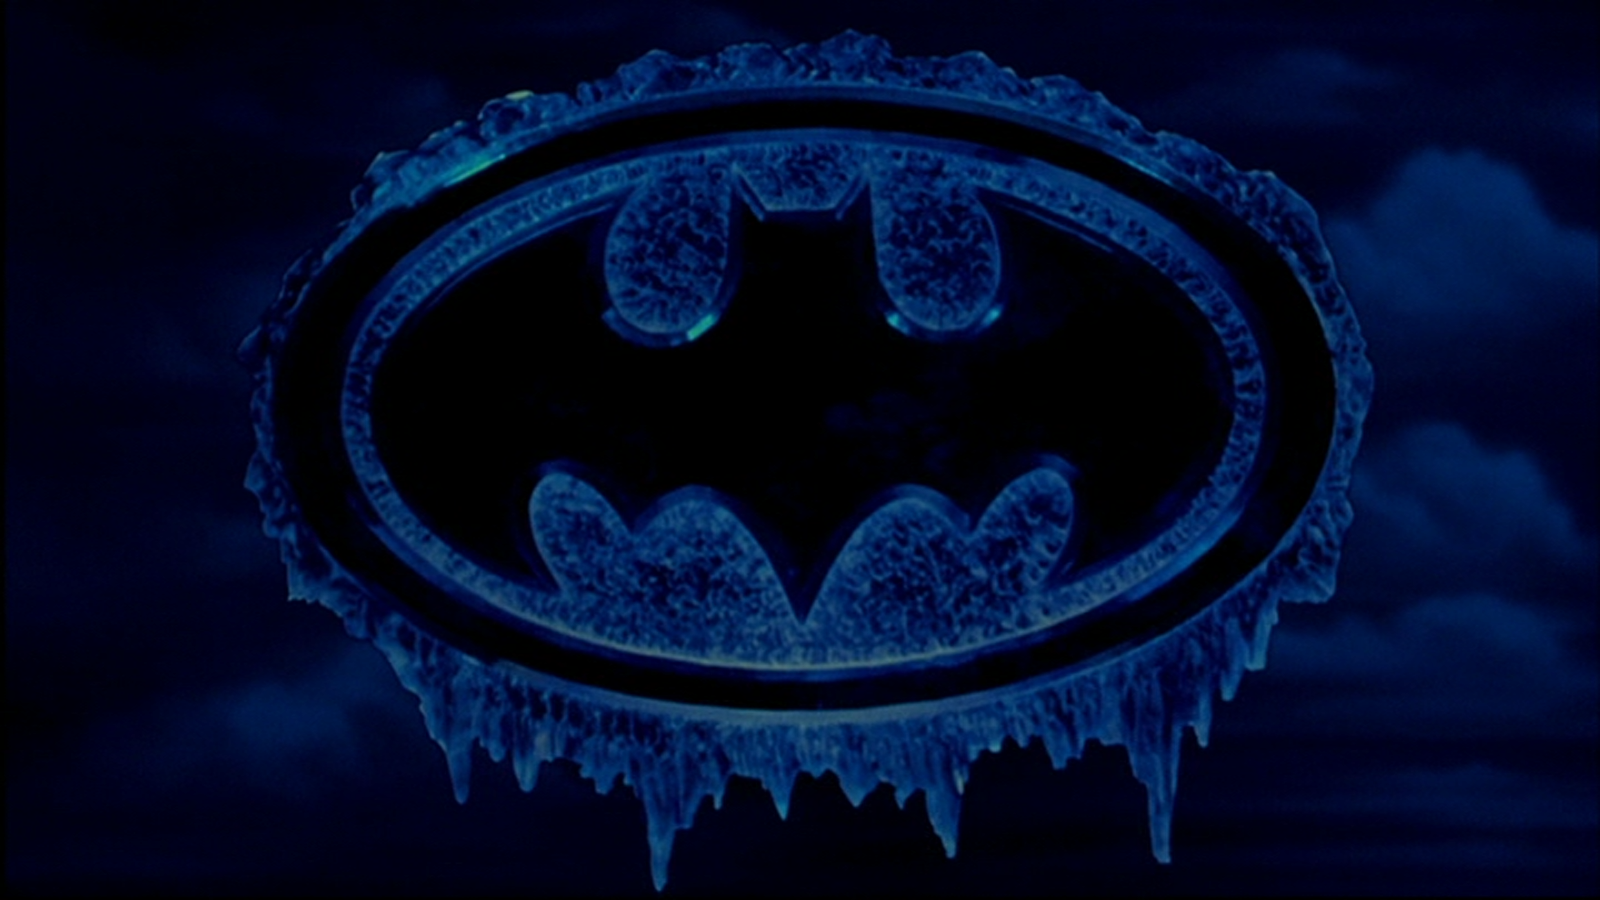 Image Frozen Batman Logog Batman Wiki Fandom Powered By Wikia